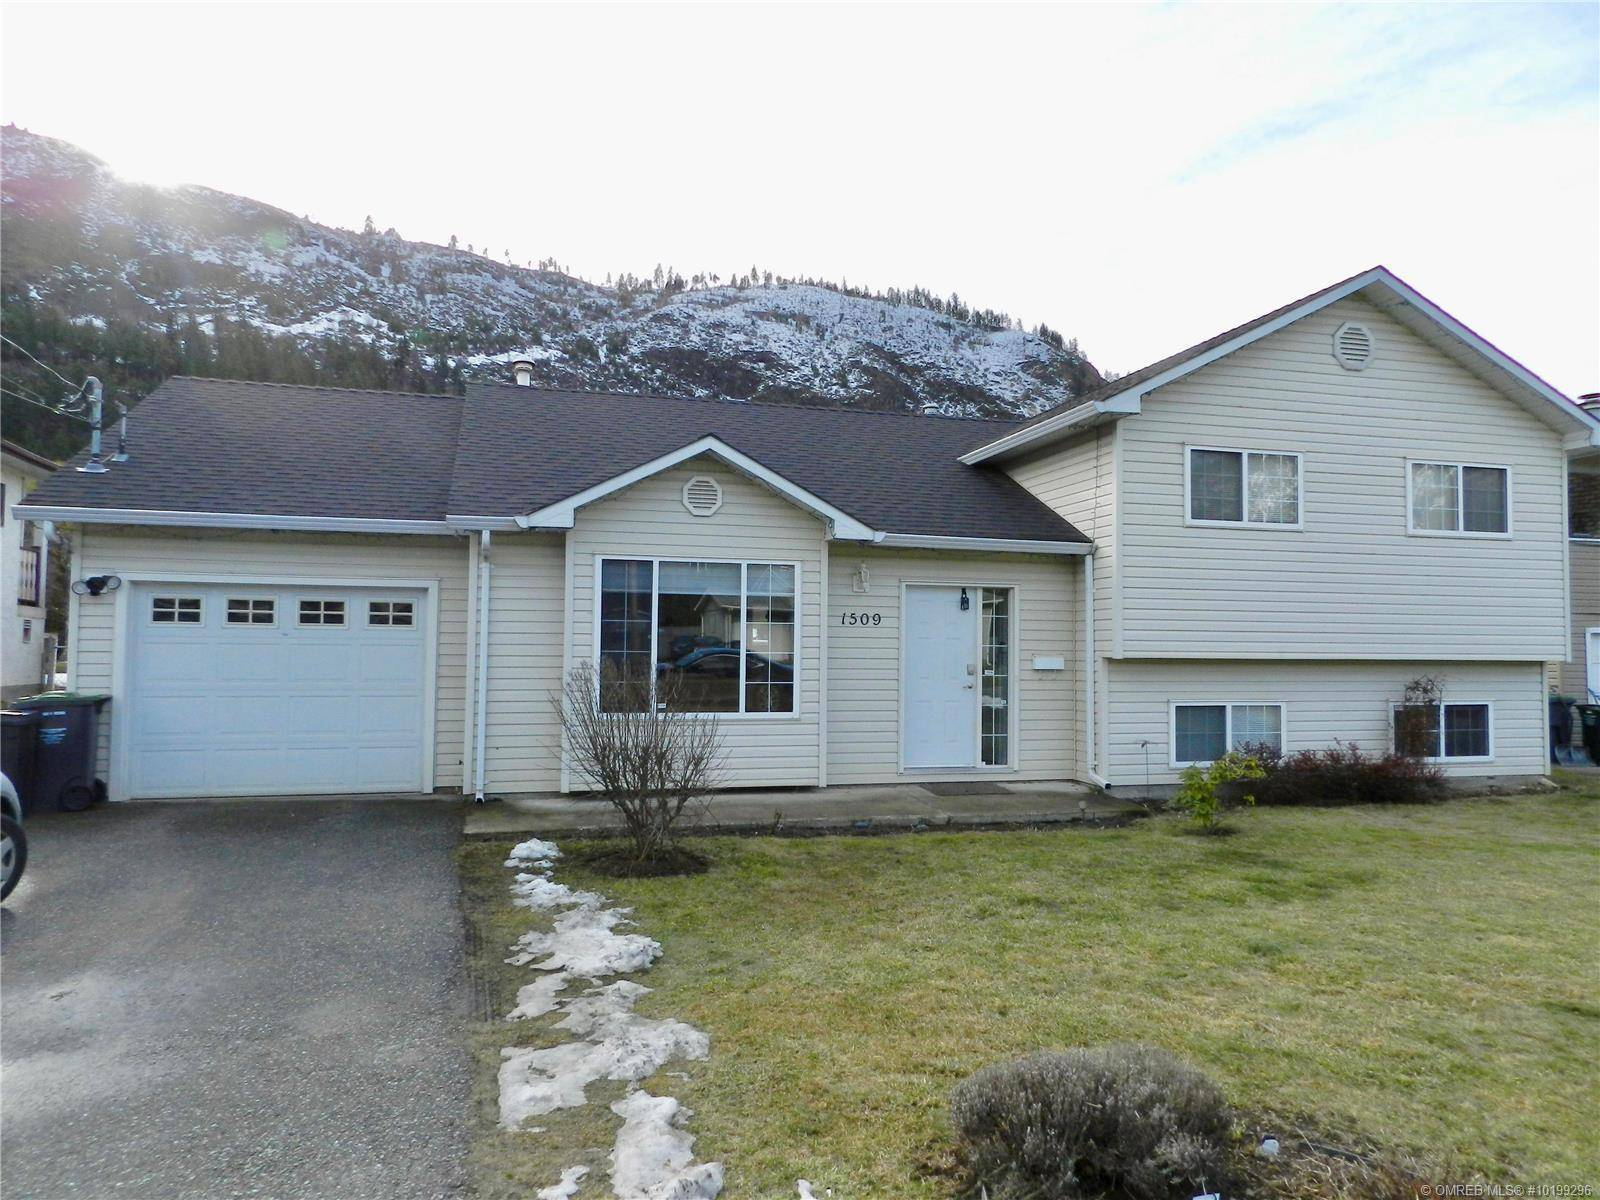 House for sale at 1509 Brentwood Rd West Kelowna British Columbia - MLS: 10199296